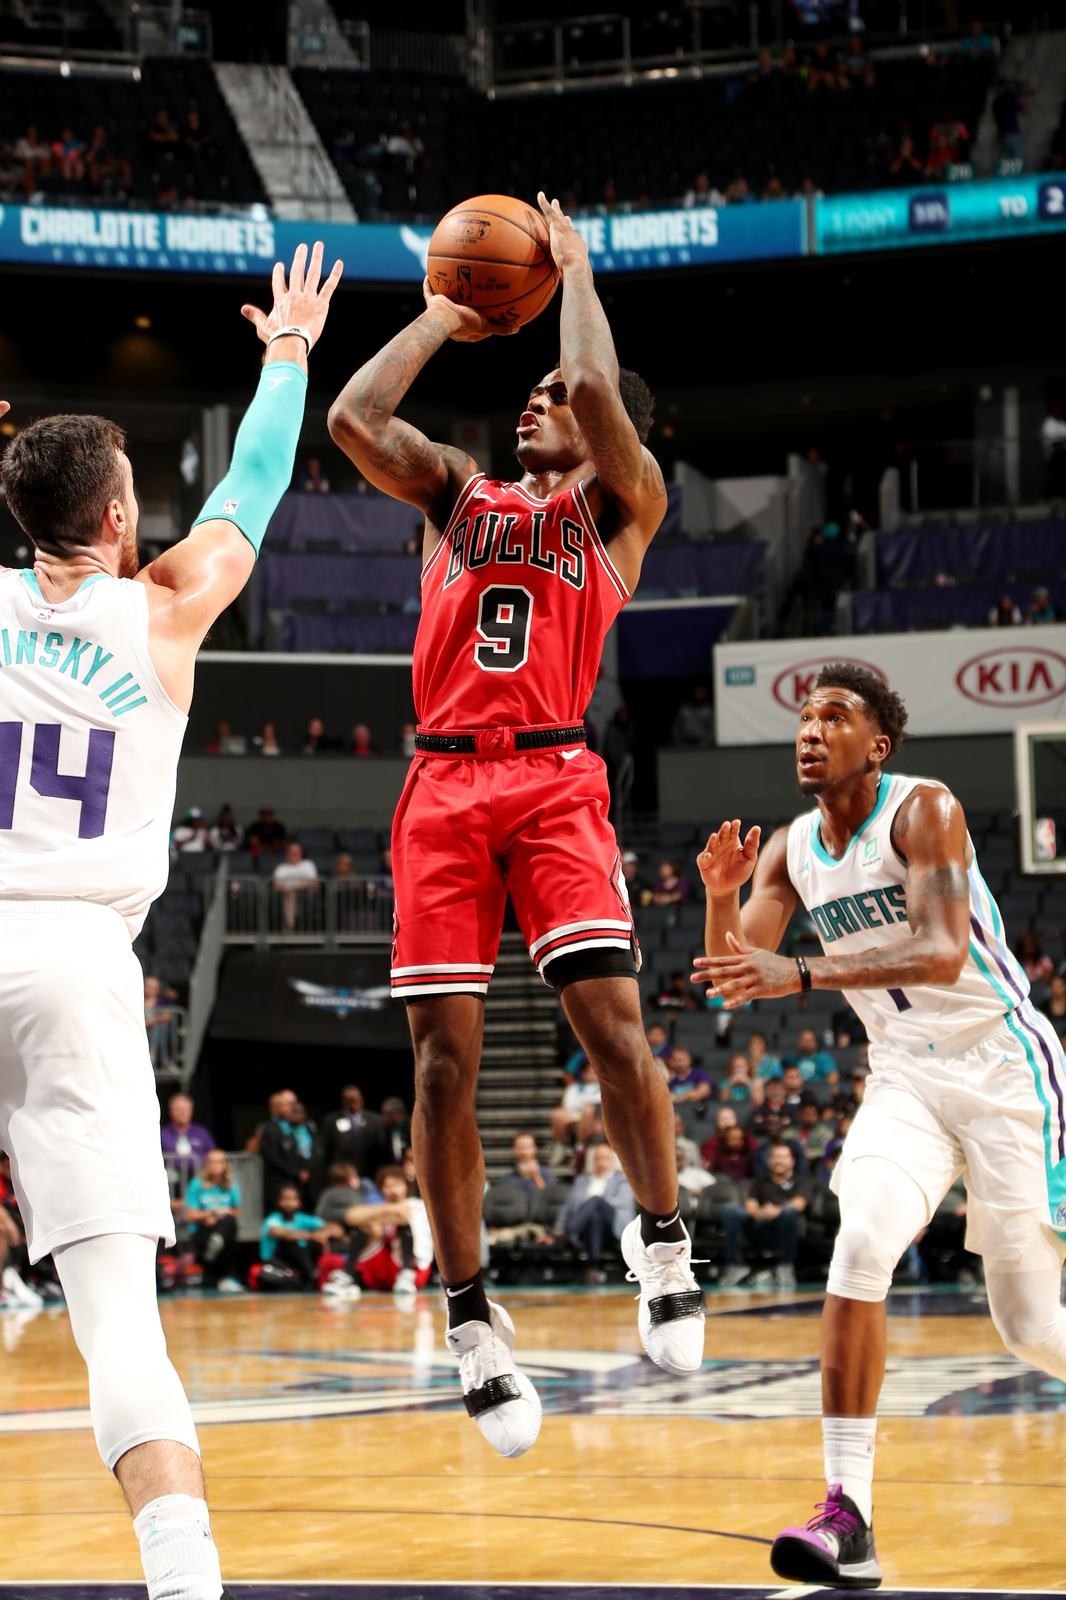 Antonio Blakeney #9 of the Chicago Bulls shoots the ball against the Charlotte Hornets during a pre-season game on October 8, 2018 at Spectrum Center in Charlotte, North Carolina.